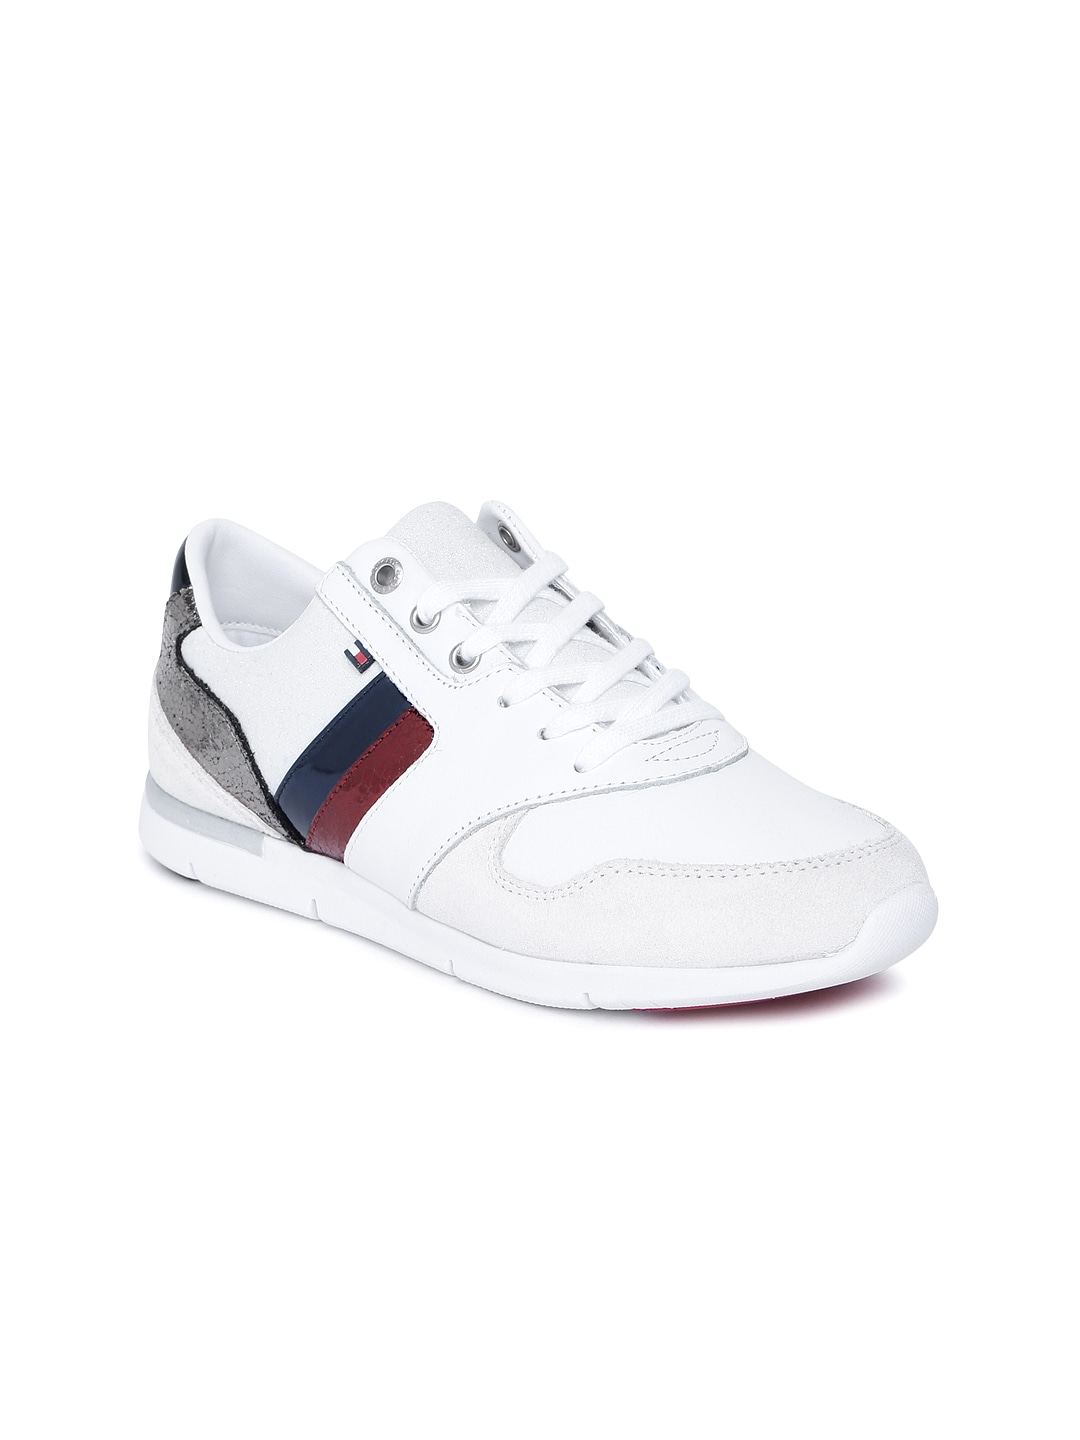 e70e65b2e Women Tommy Hilfiger Footwear - Buy Women Tommy Hilfiger Footwear online in  India